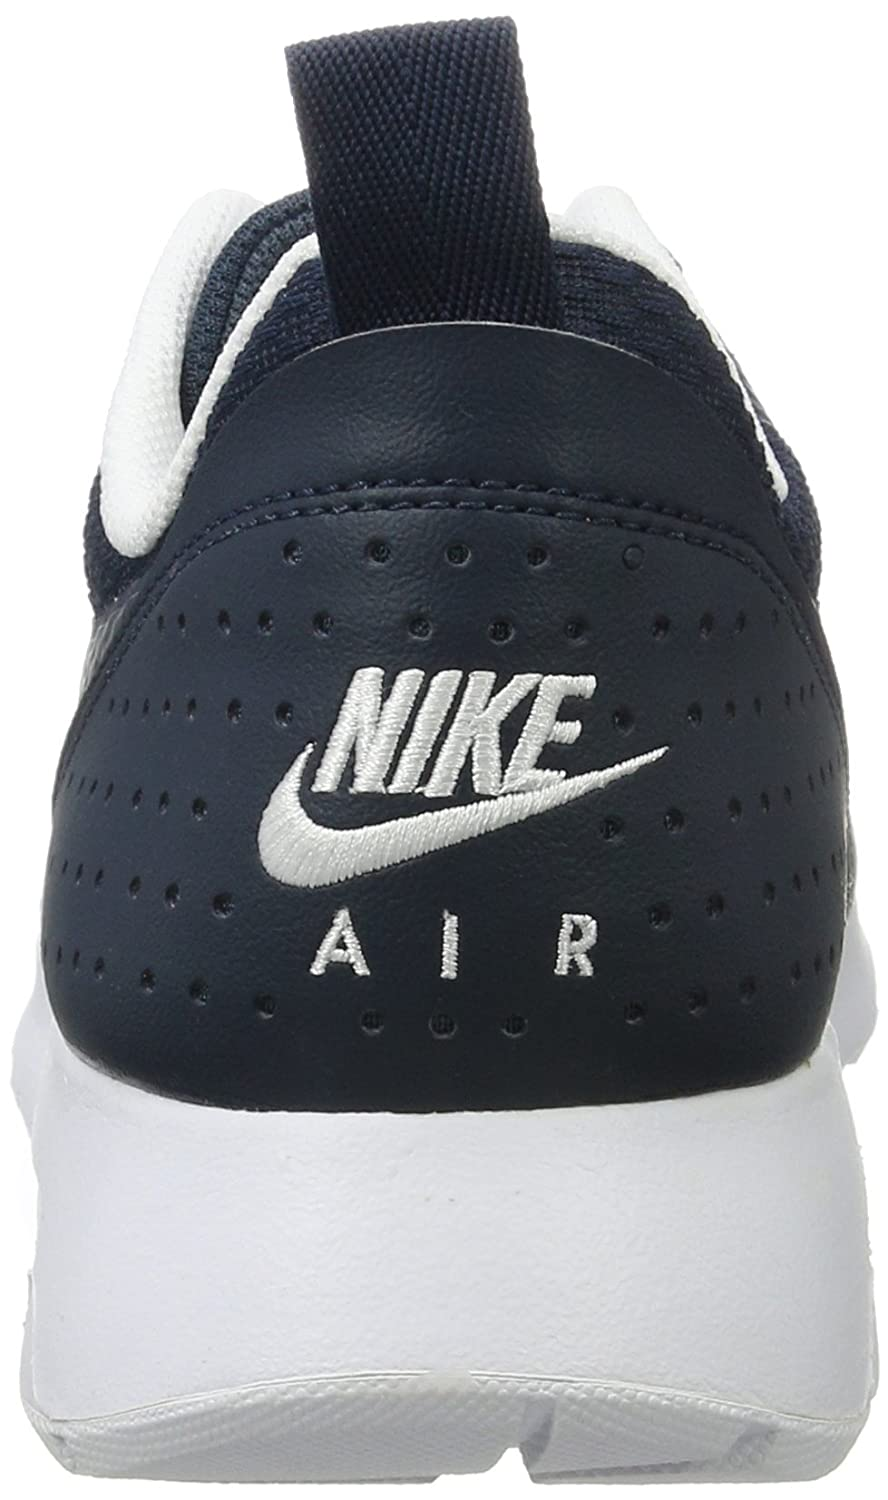 best website 3a330 81347 Amazon.com   Nike Men s Air Max Tavas Running Shoes   Road Running